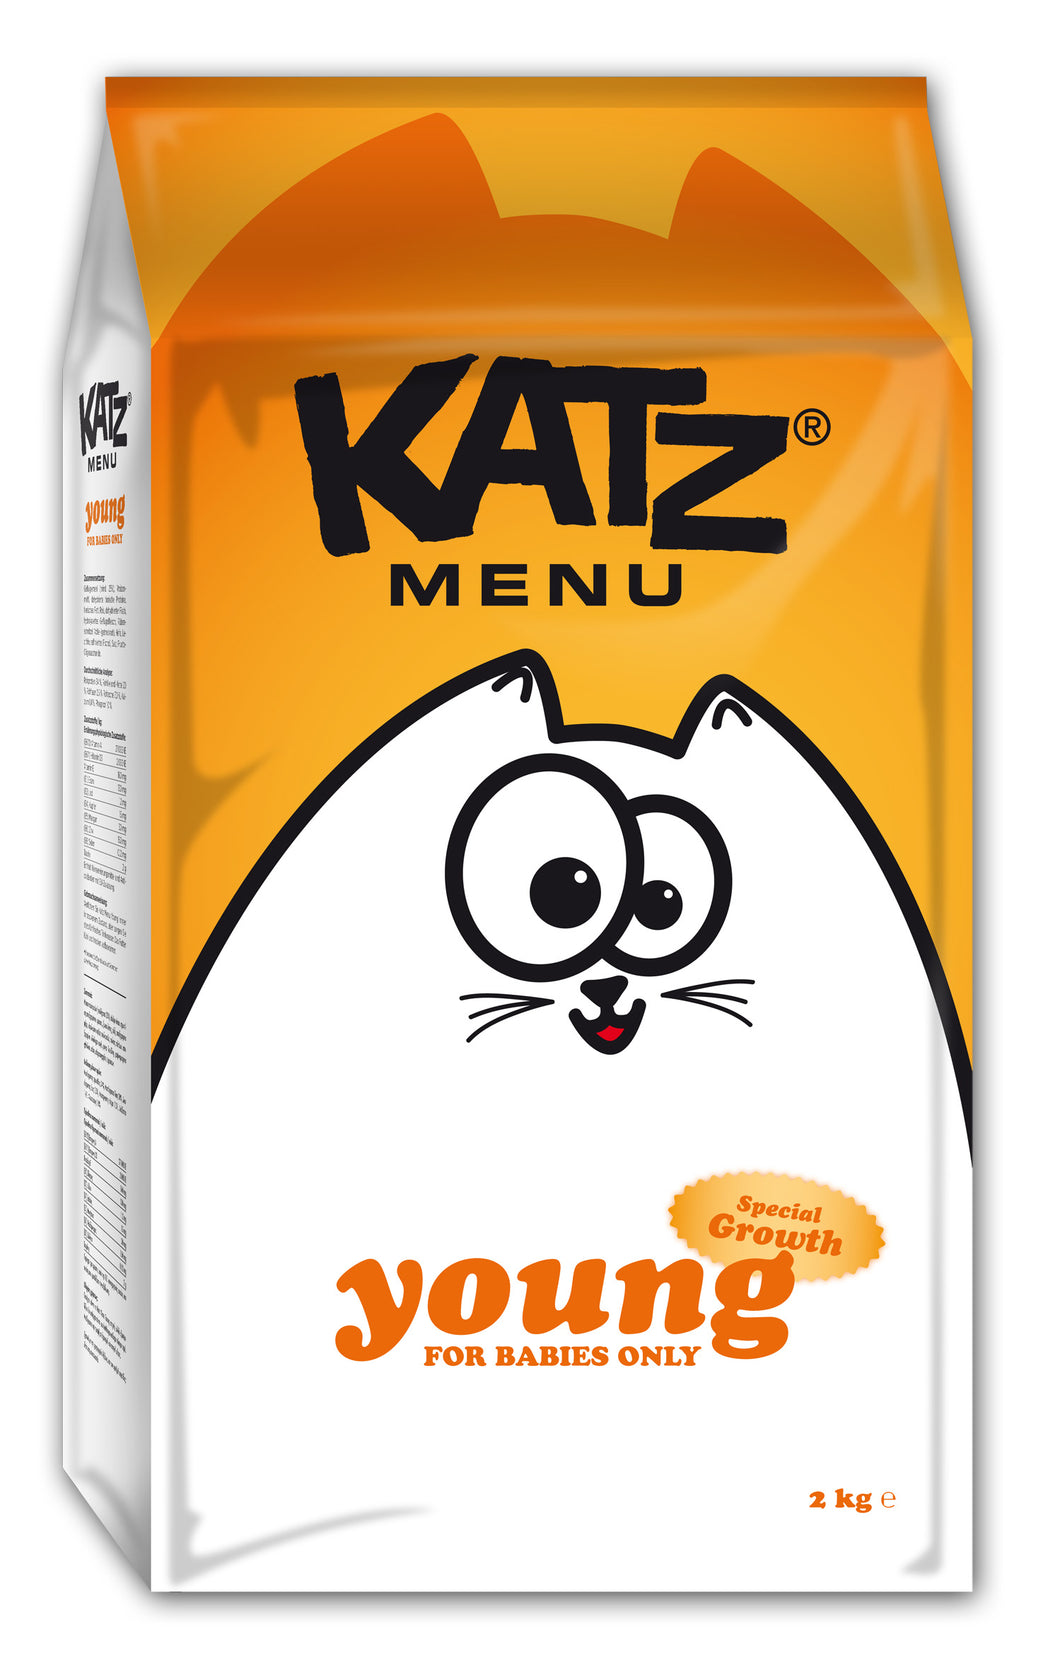 Katz Menu young - 6 x 2kg - Oscar and Kitty